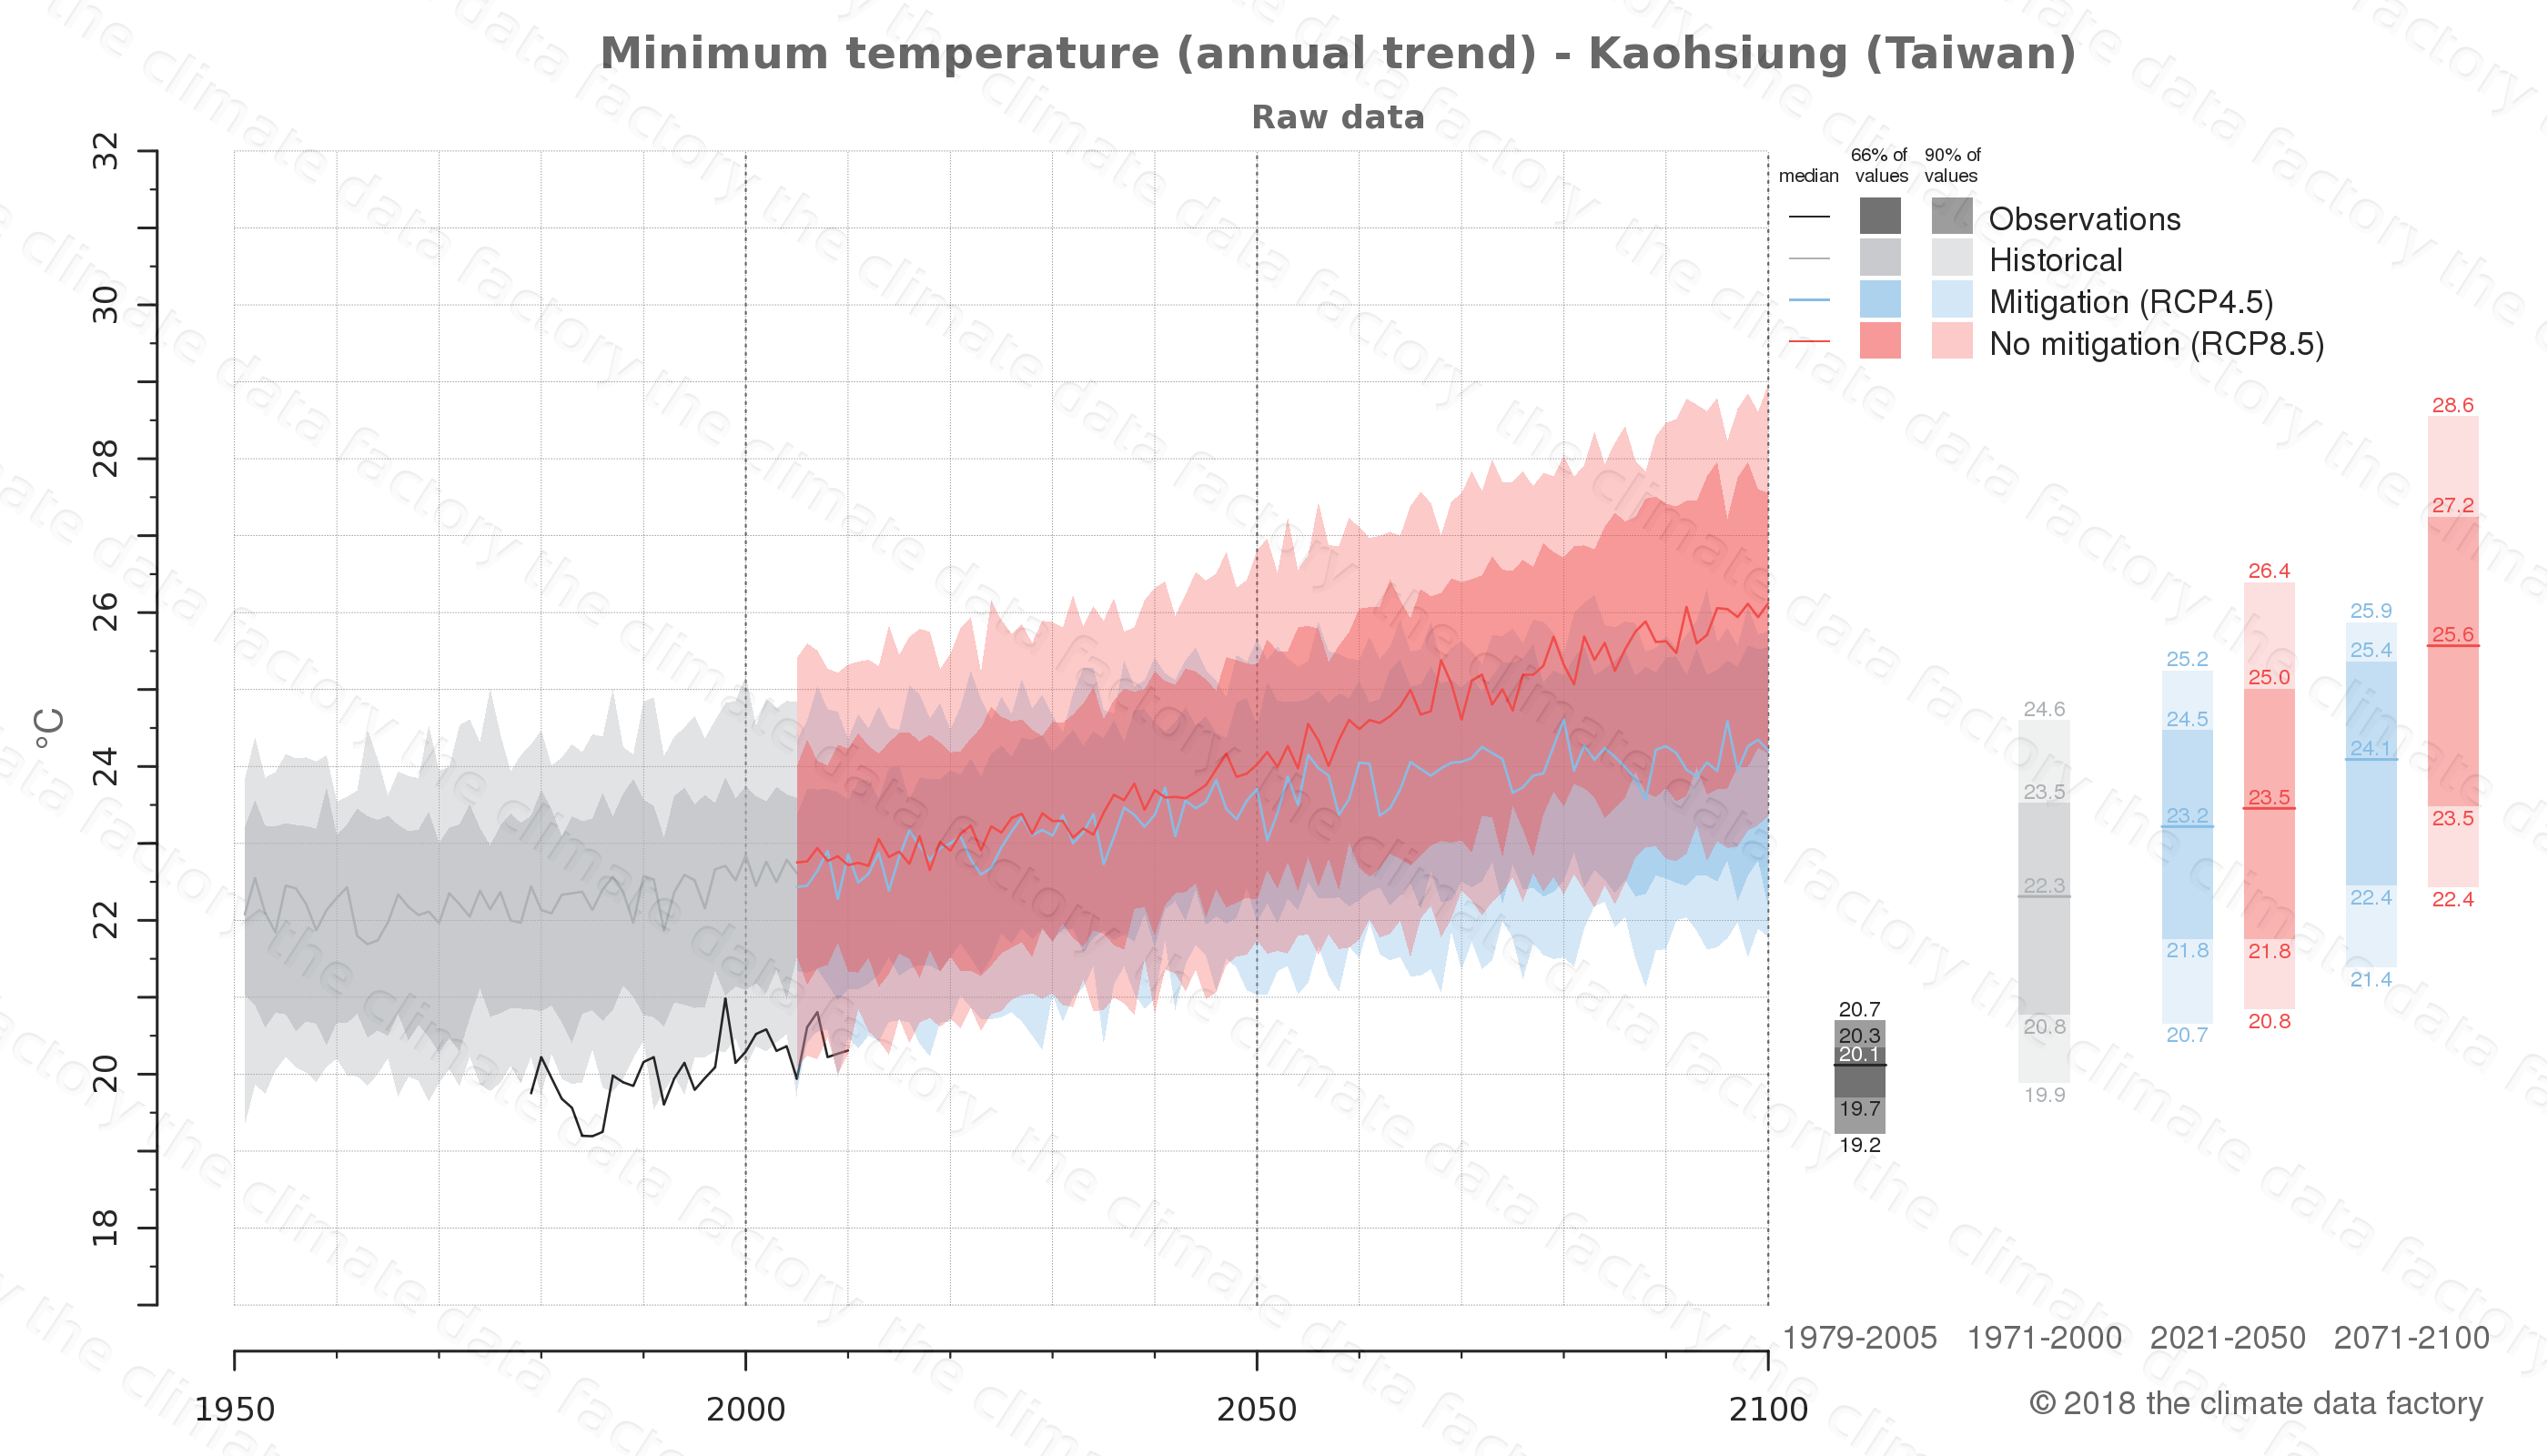 climate change data policy adaptation climate graph city data minimum-temperature kaohsiung taiwan